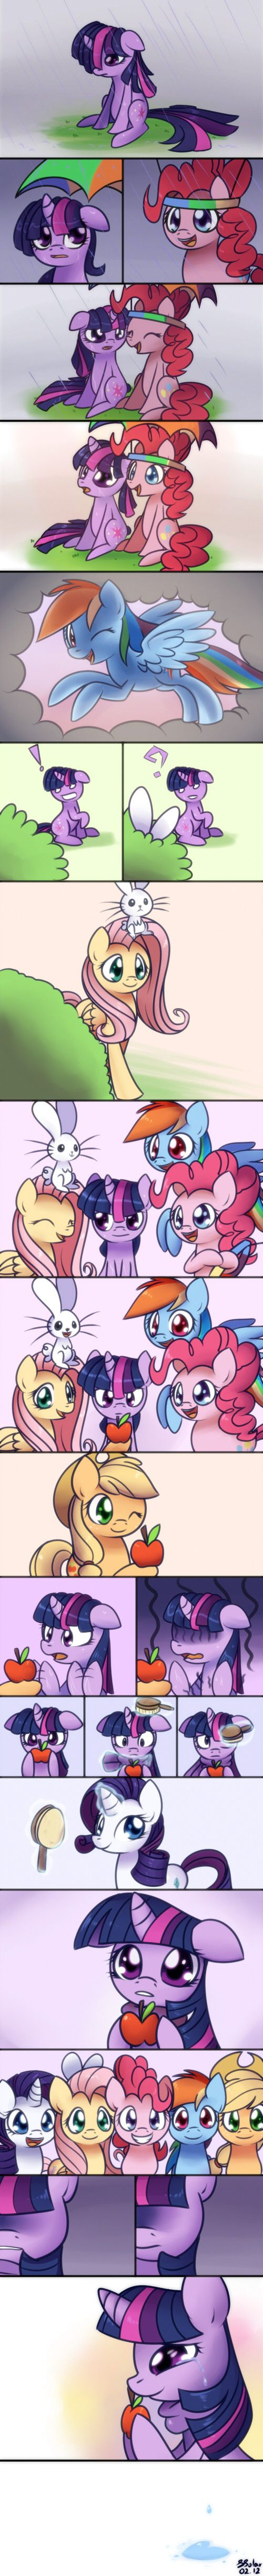 This is why I'm a brony 100,000,000,000,000,000,000,000,000,000,000,000,000,000,000,000,000